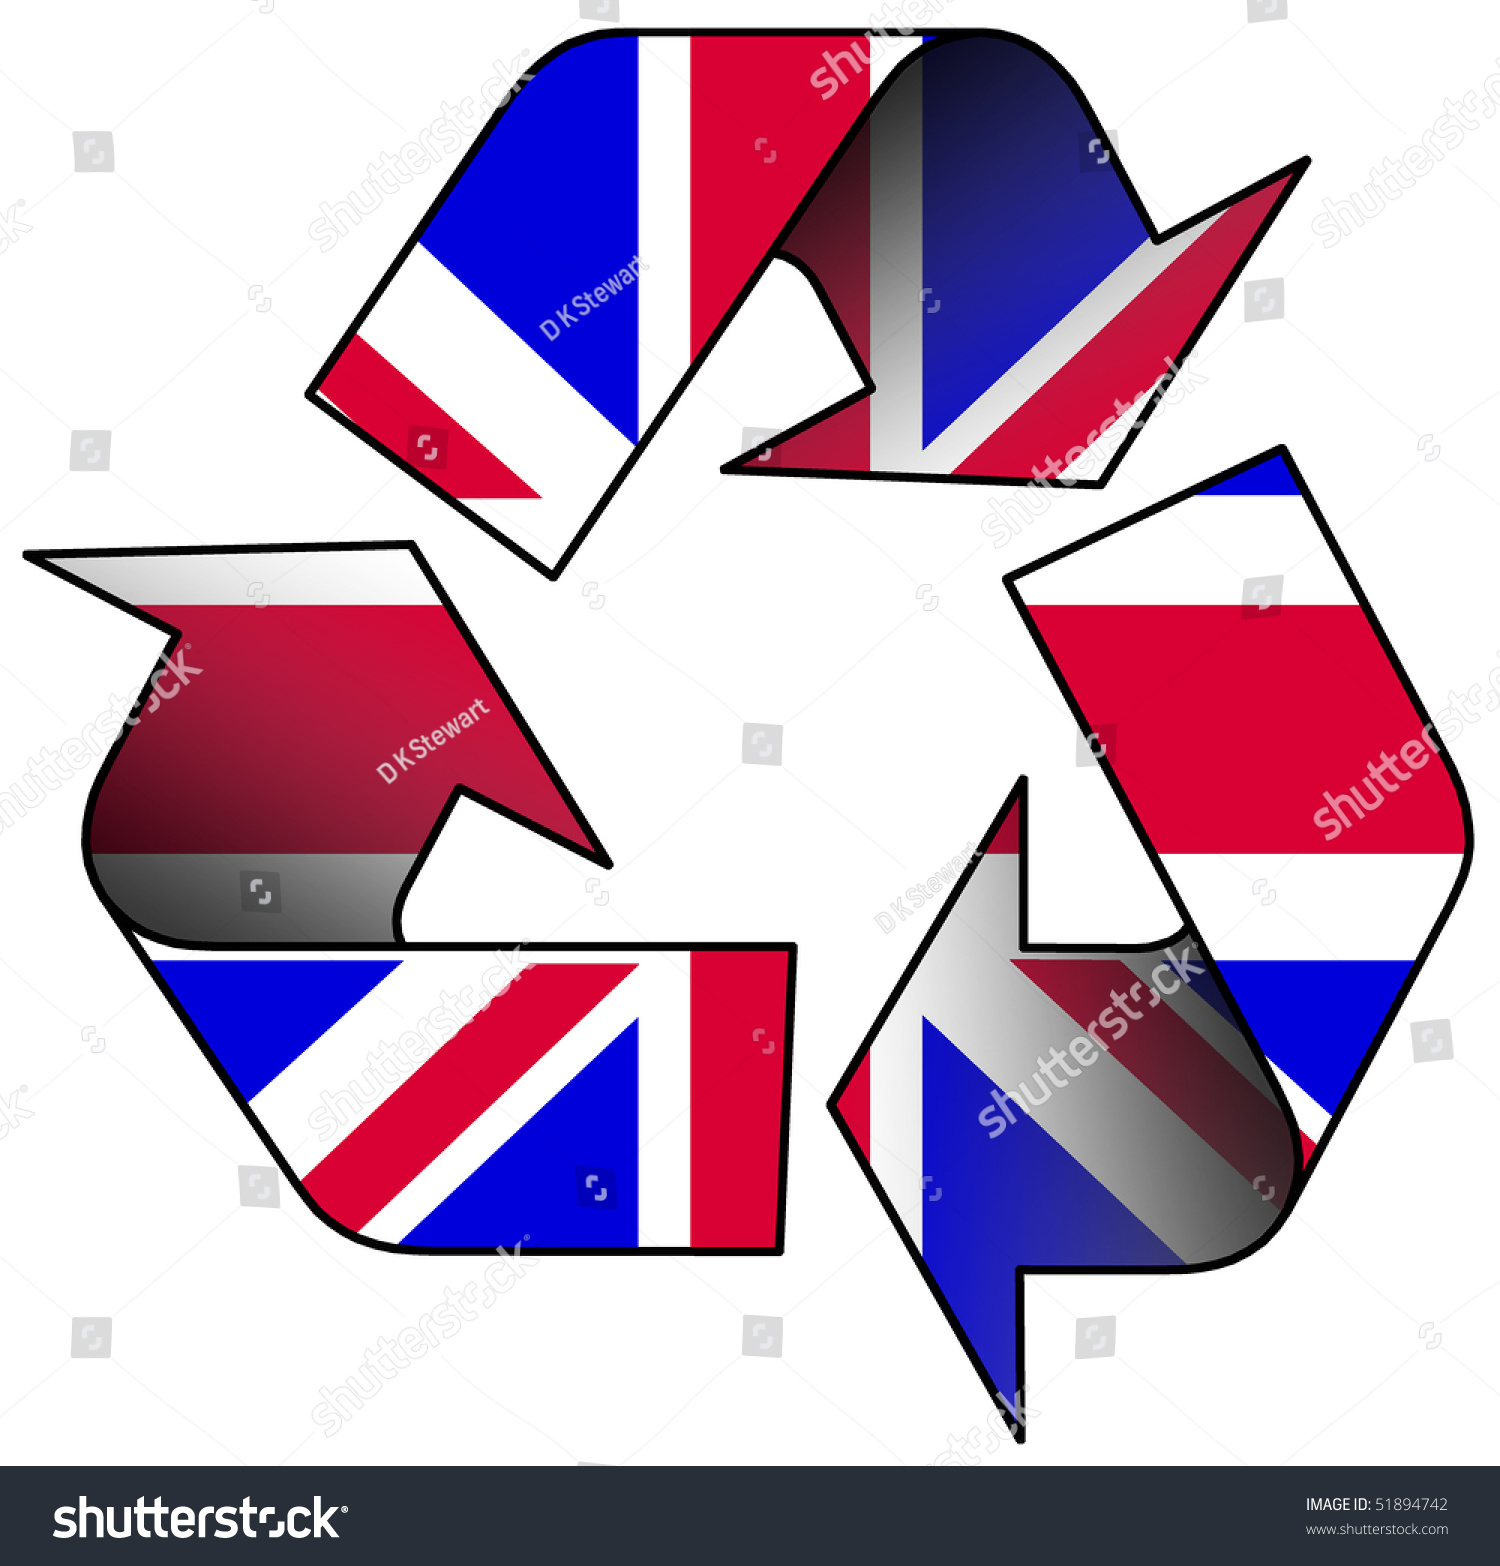 Recycle logo containing uk flag stock illustration 51894742 recycle logo containing uk flag biocorpaavc